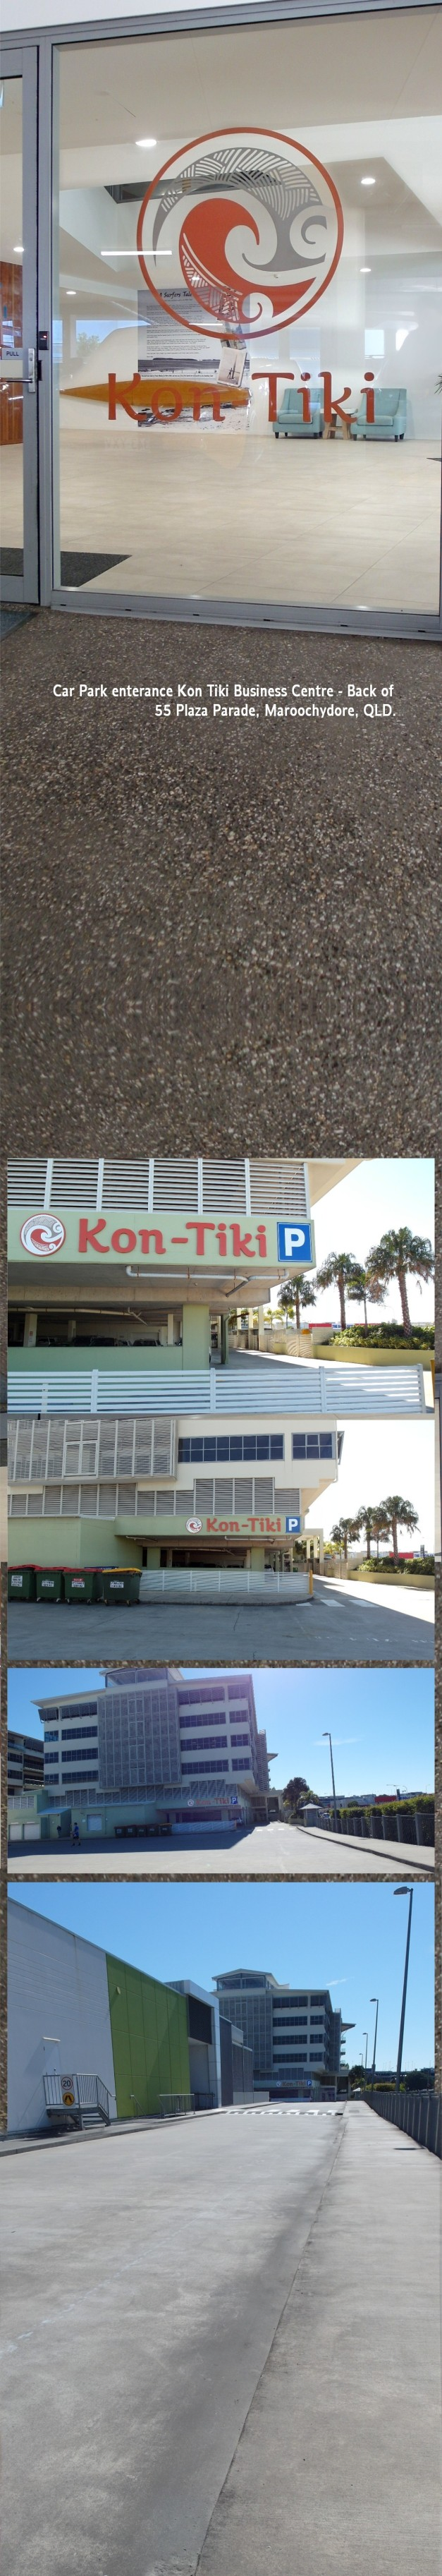 KonTikiBusinessCentre-723